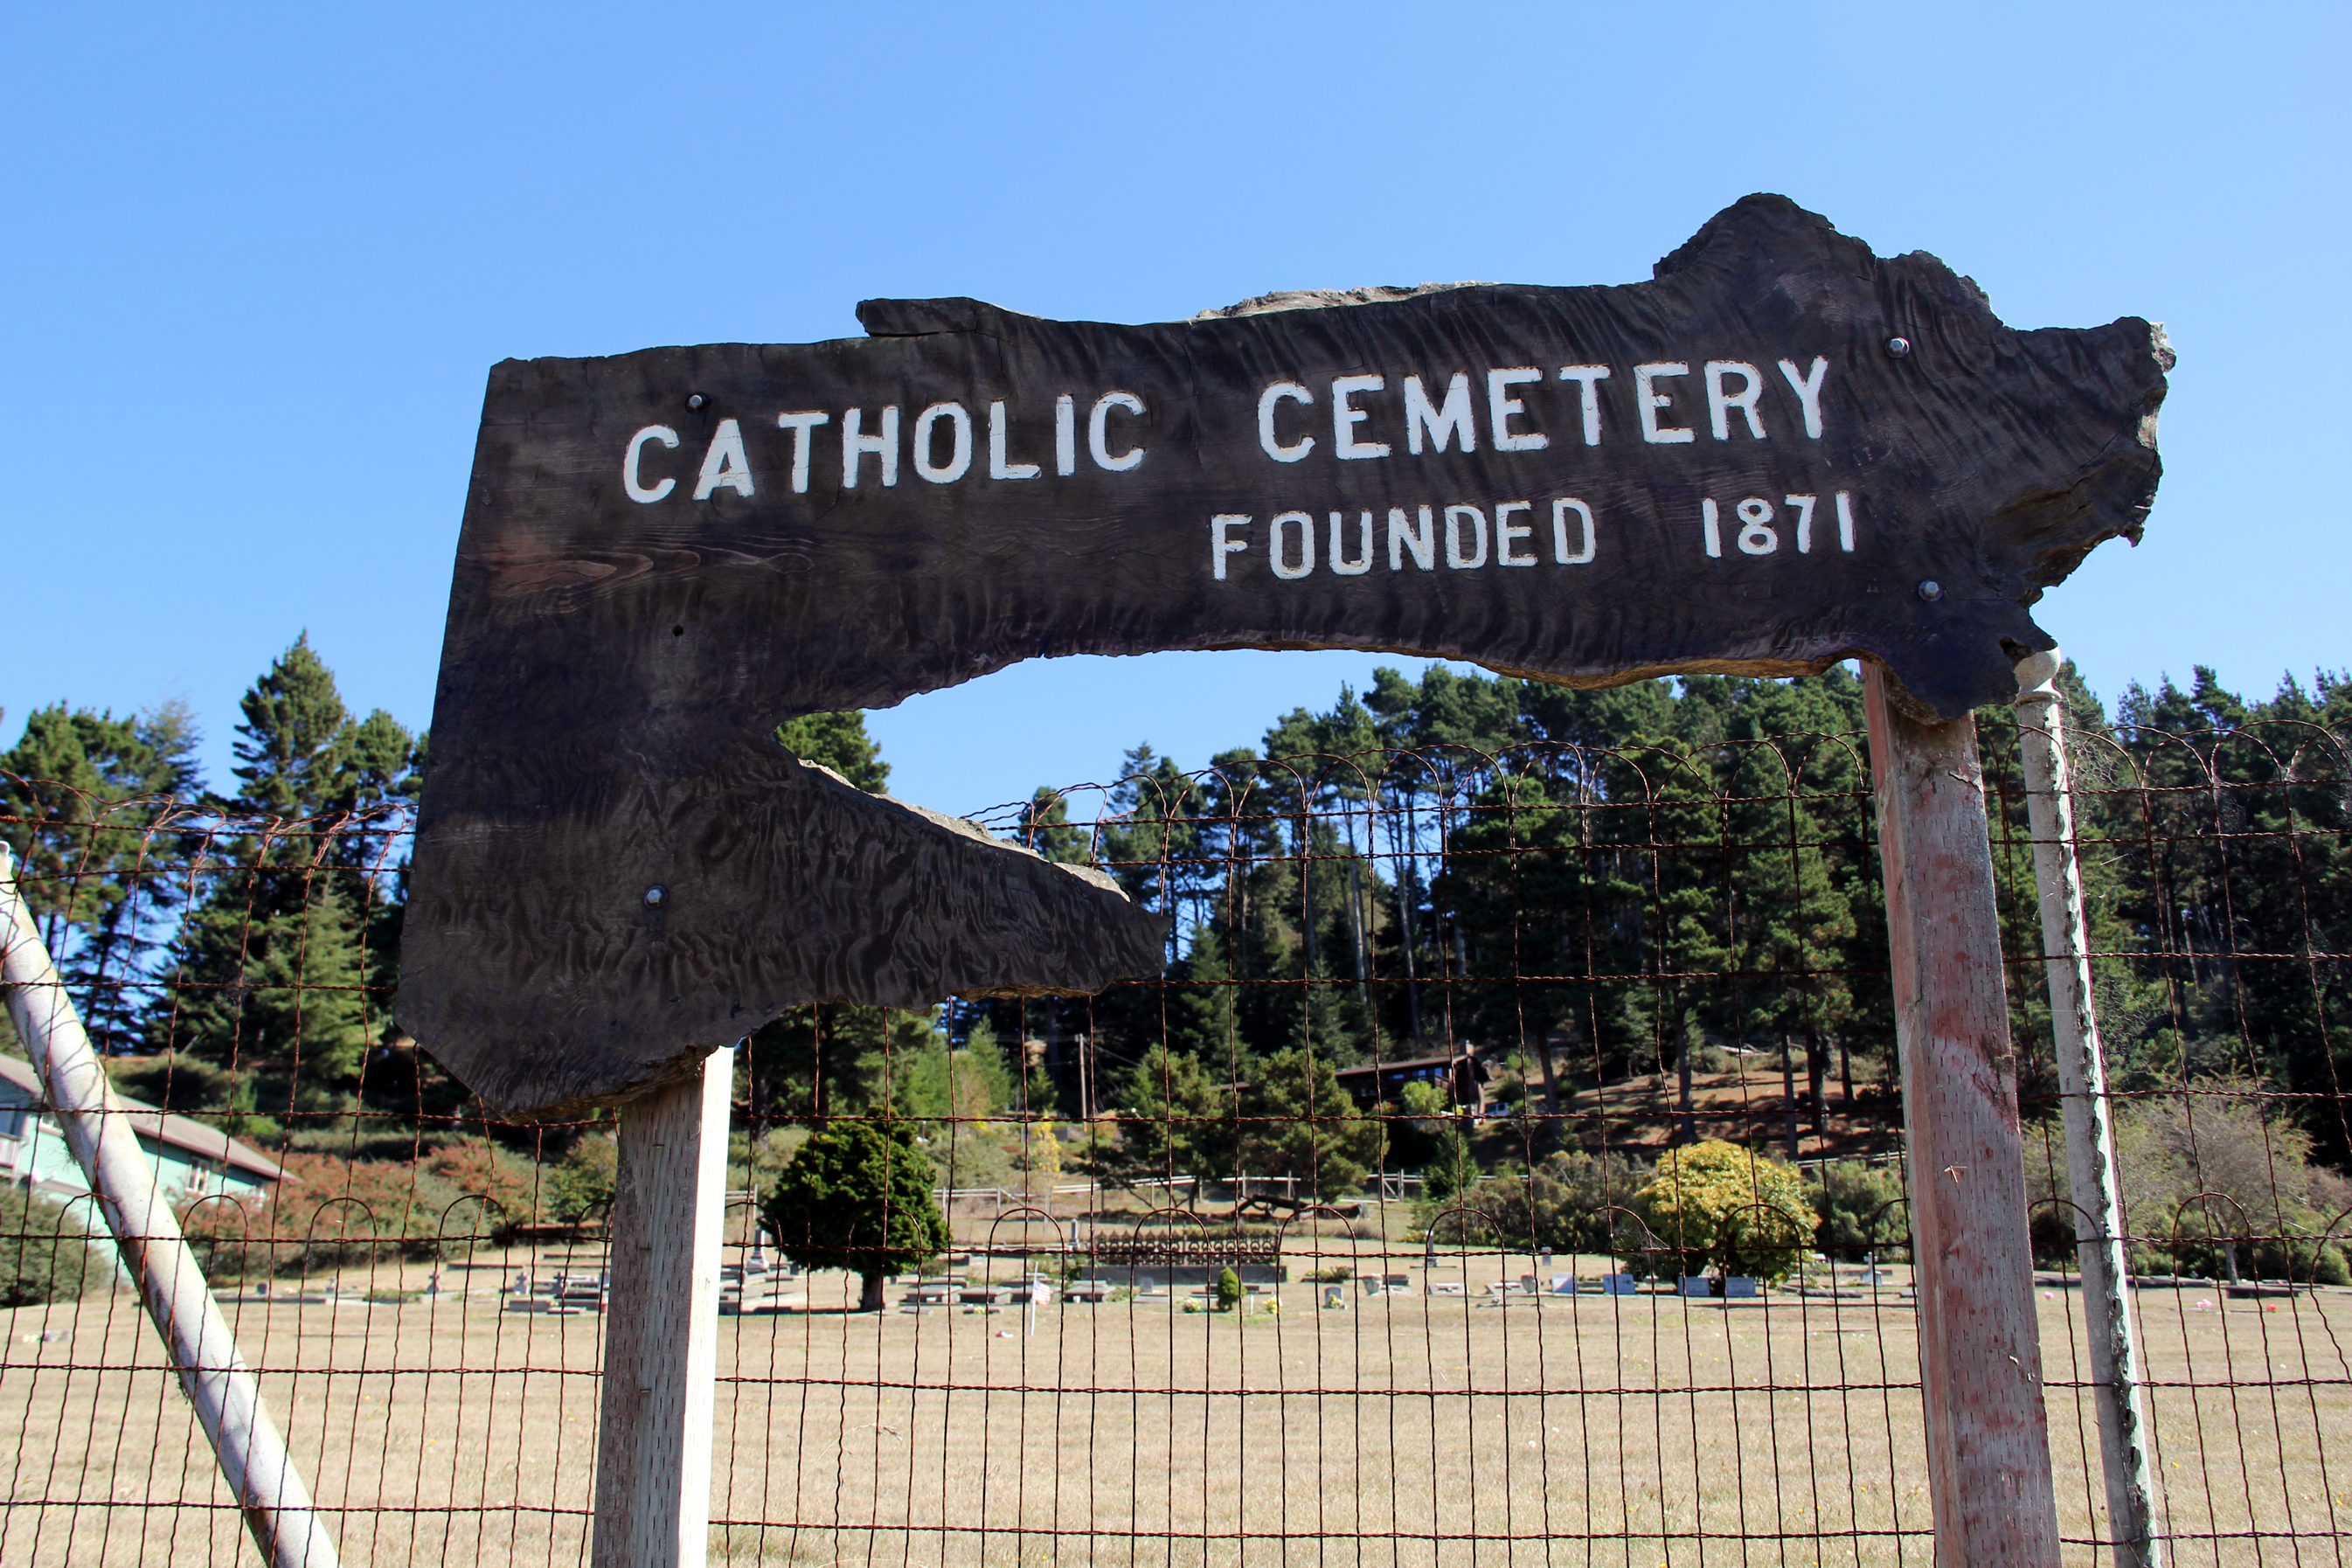 Catholic Cemetery